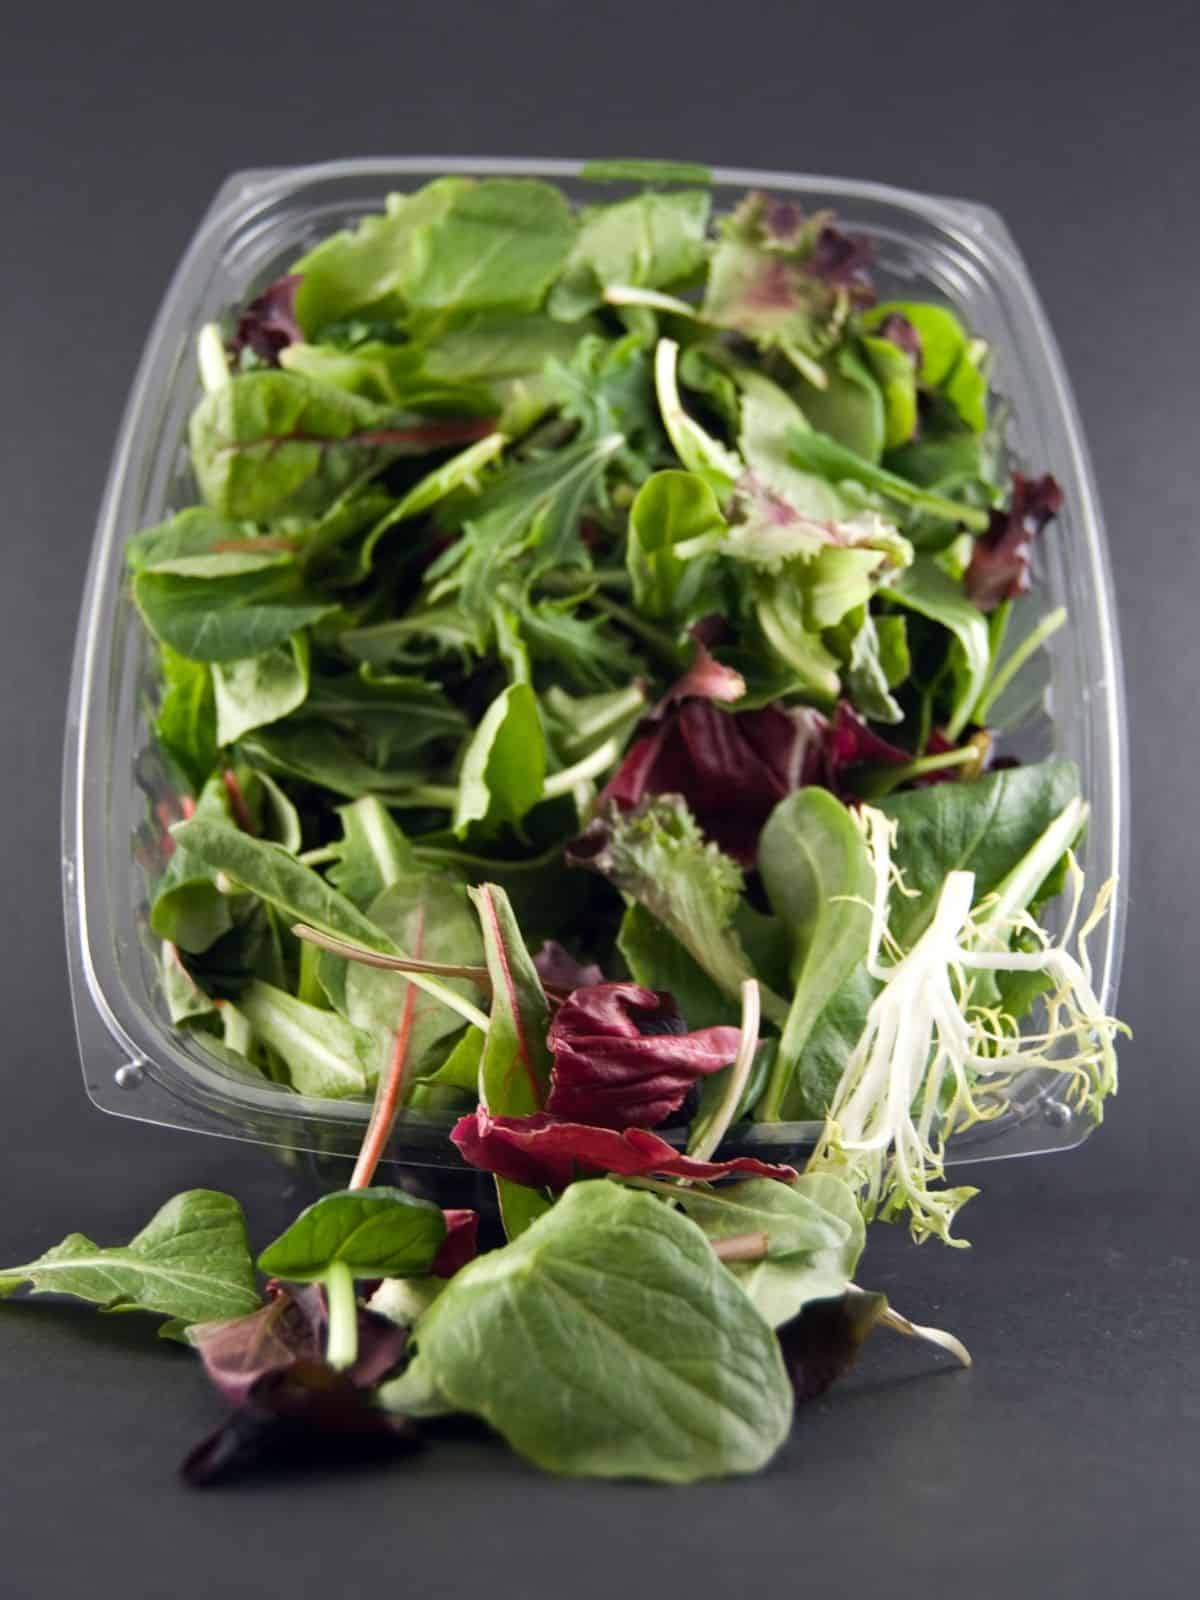 Pre packed salad leaves In plastic container